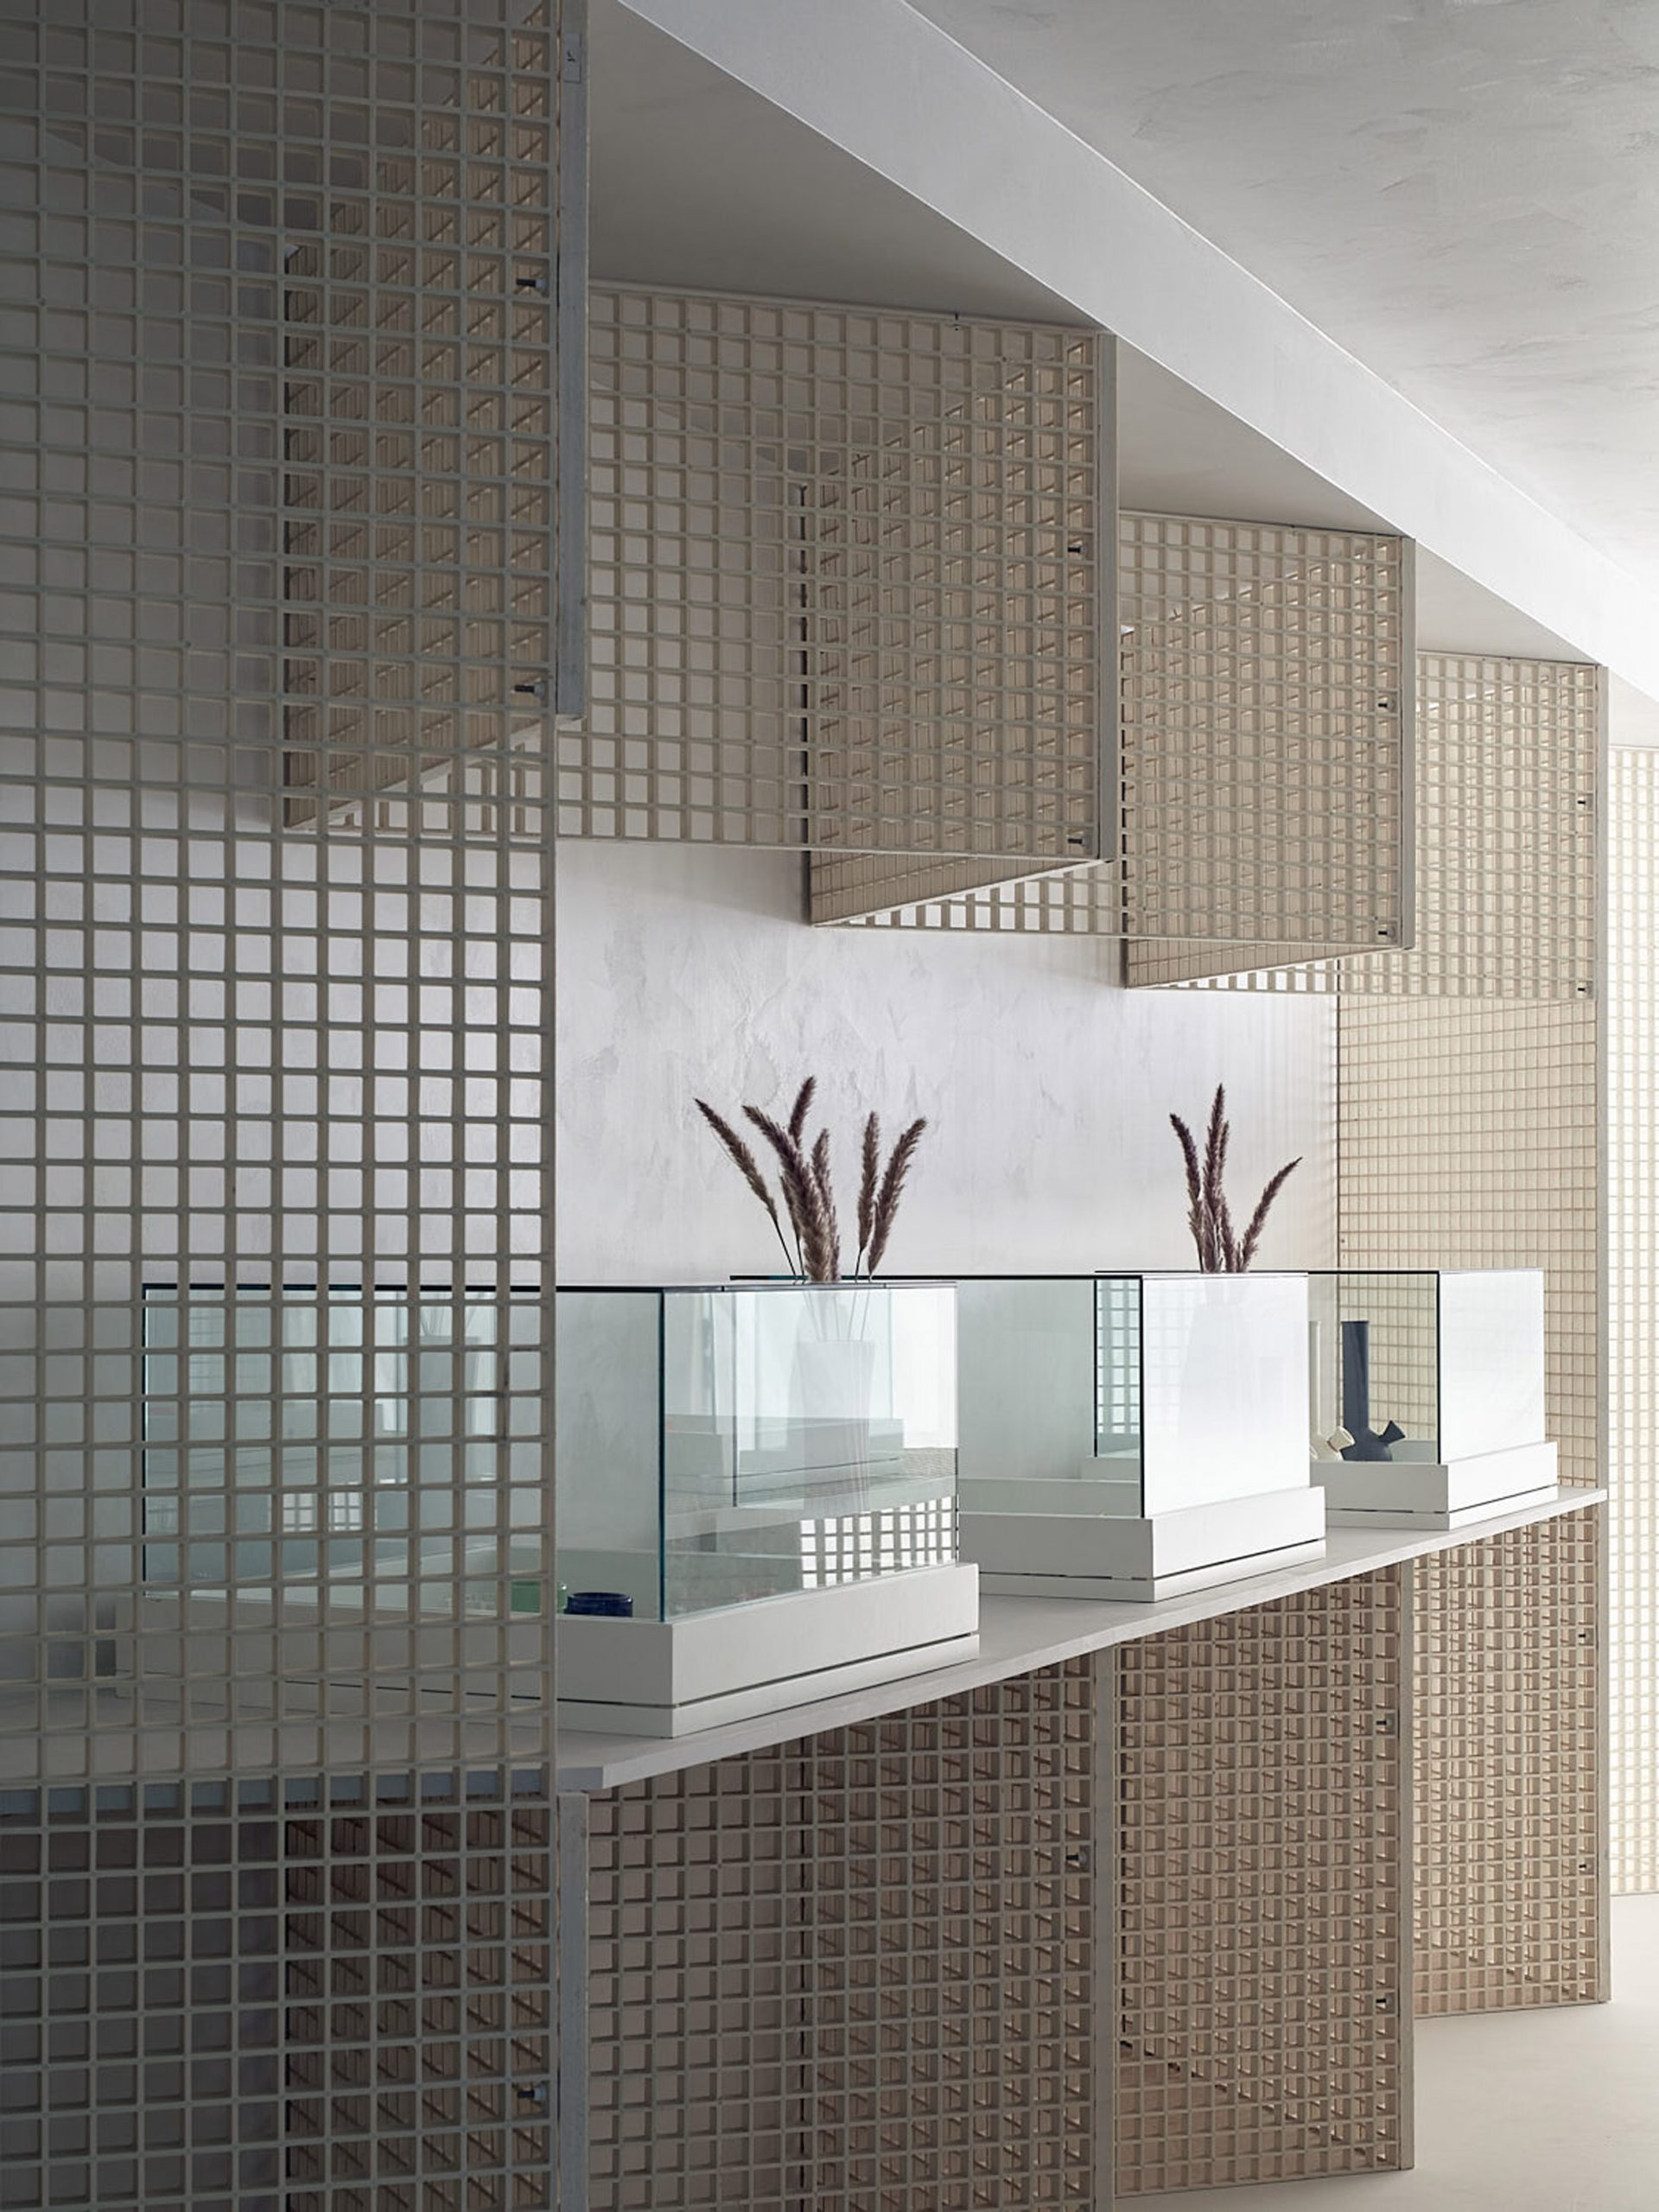 Zigzagging walls and glass display vitrines in cannabis dispensary interior by StudioAC